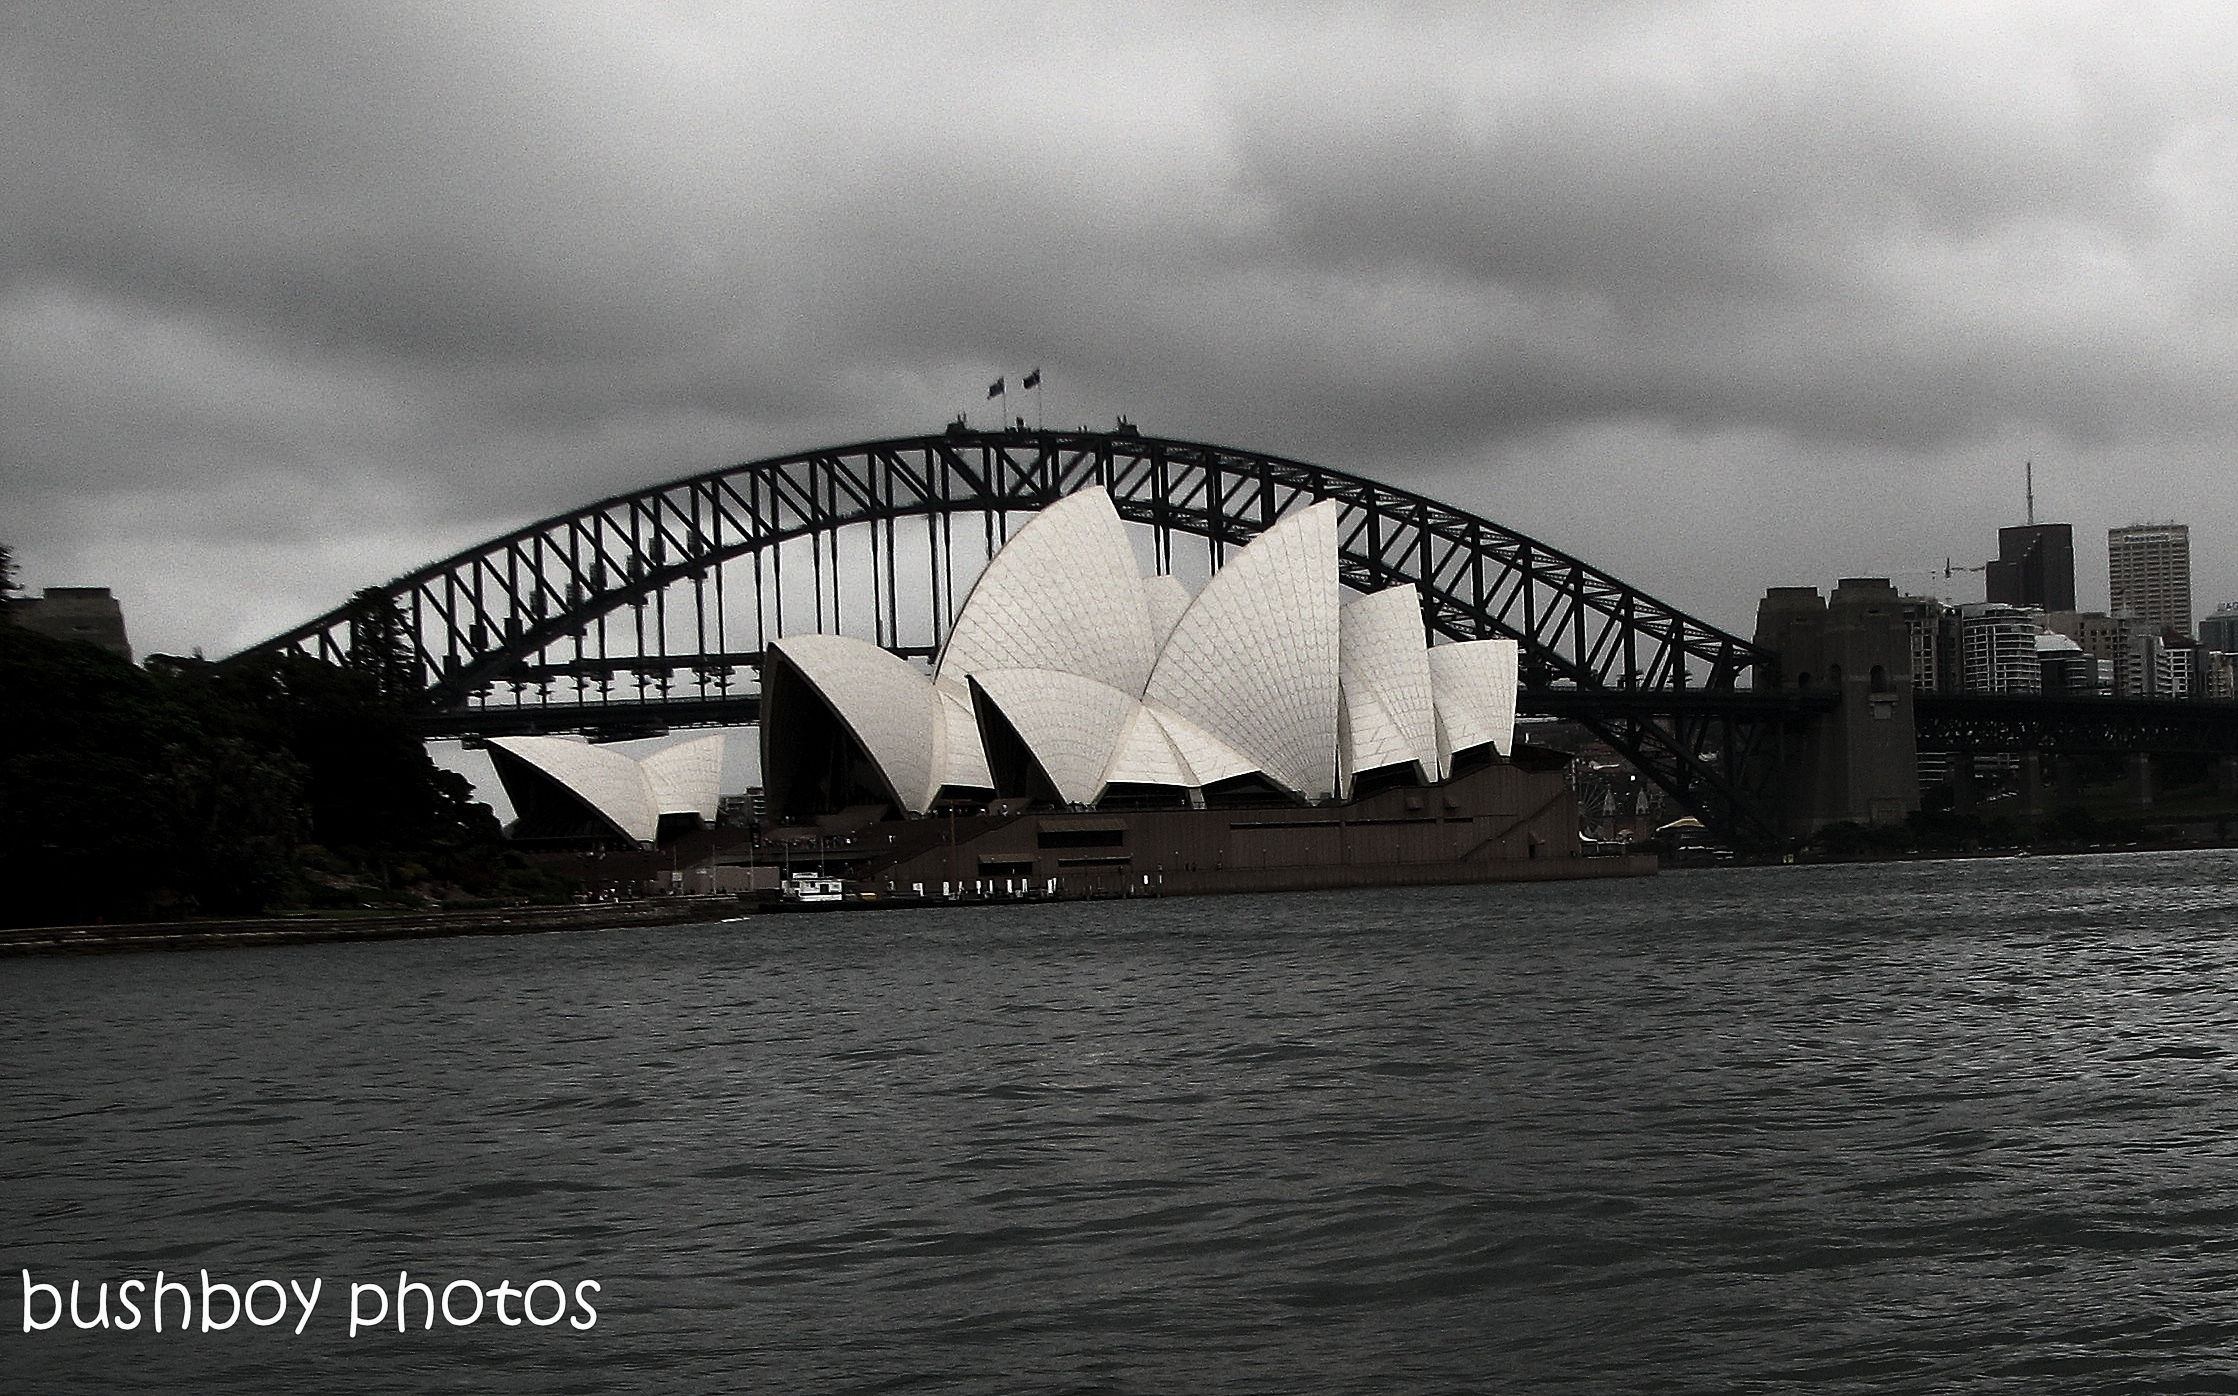 170609_blog challenge_buildings_sydney opera house